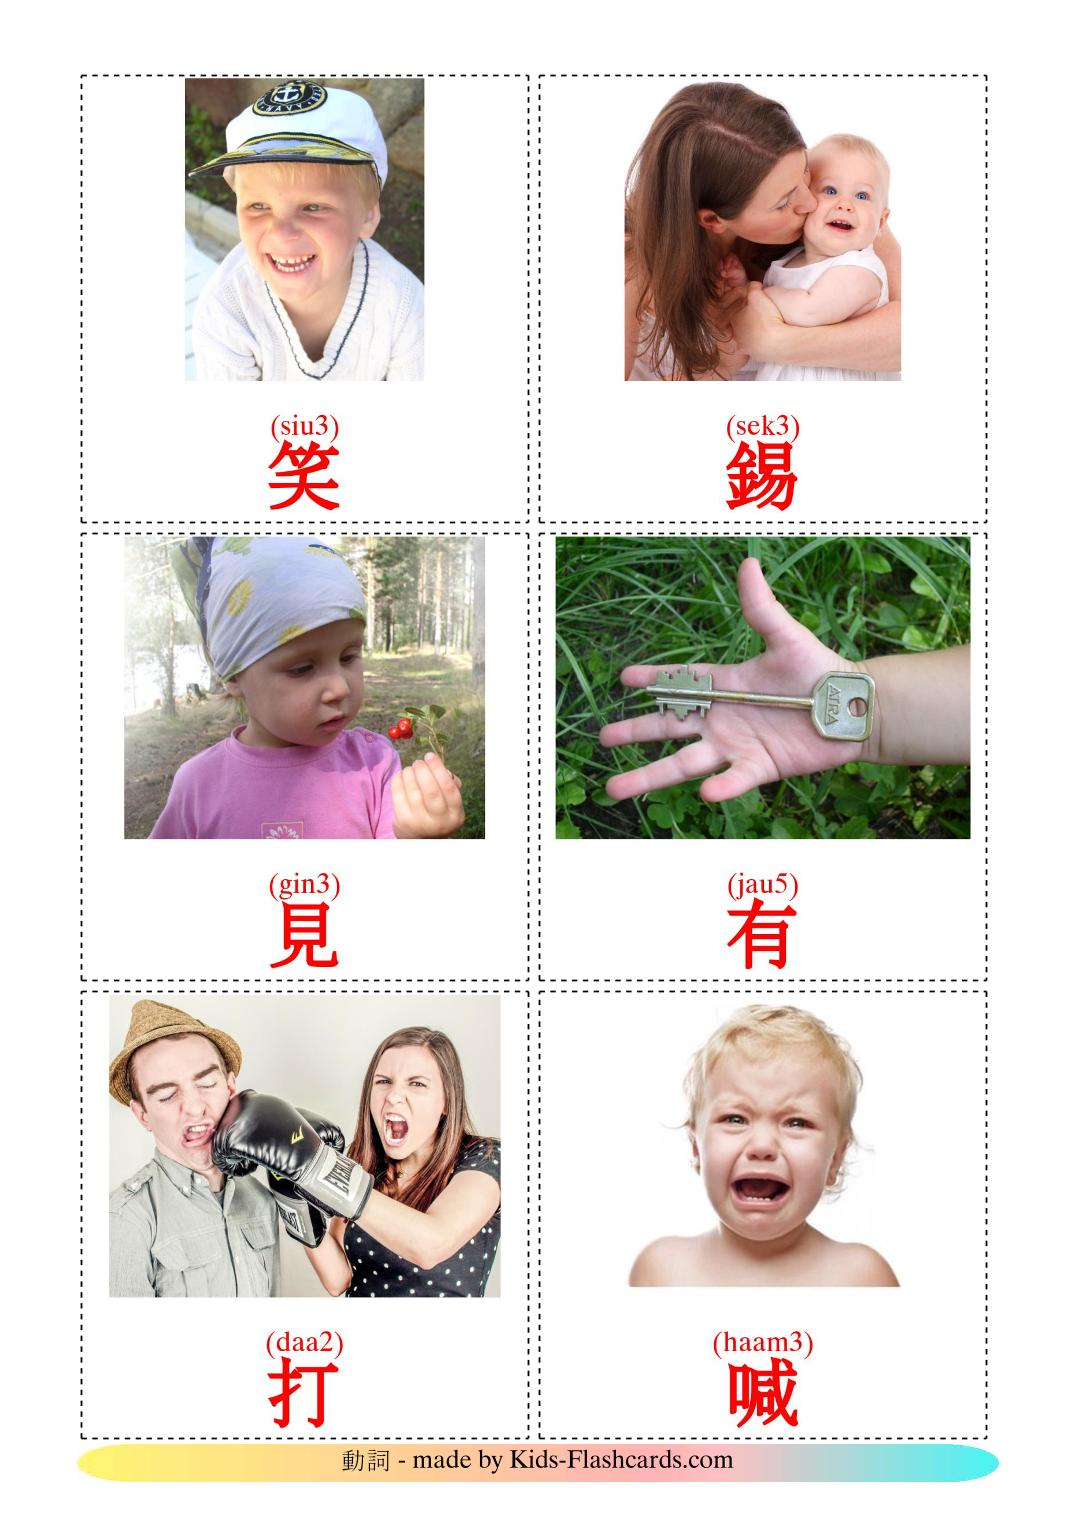 State verbs - 23 Free Printable cantonese(Colloquial) Flashcards